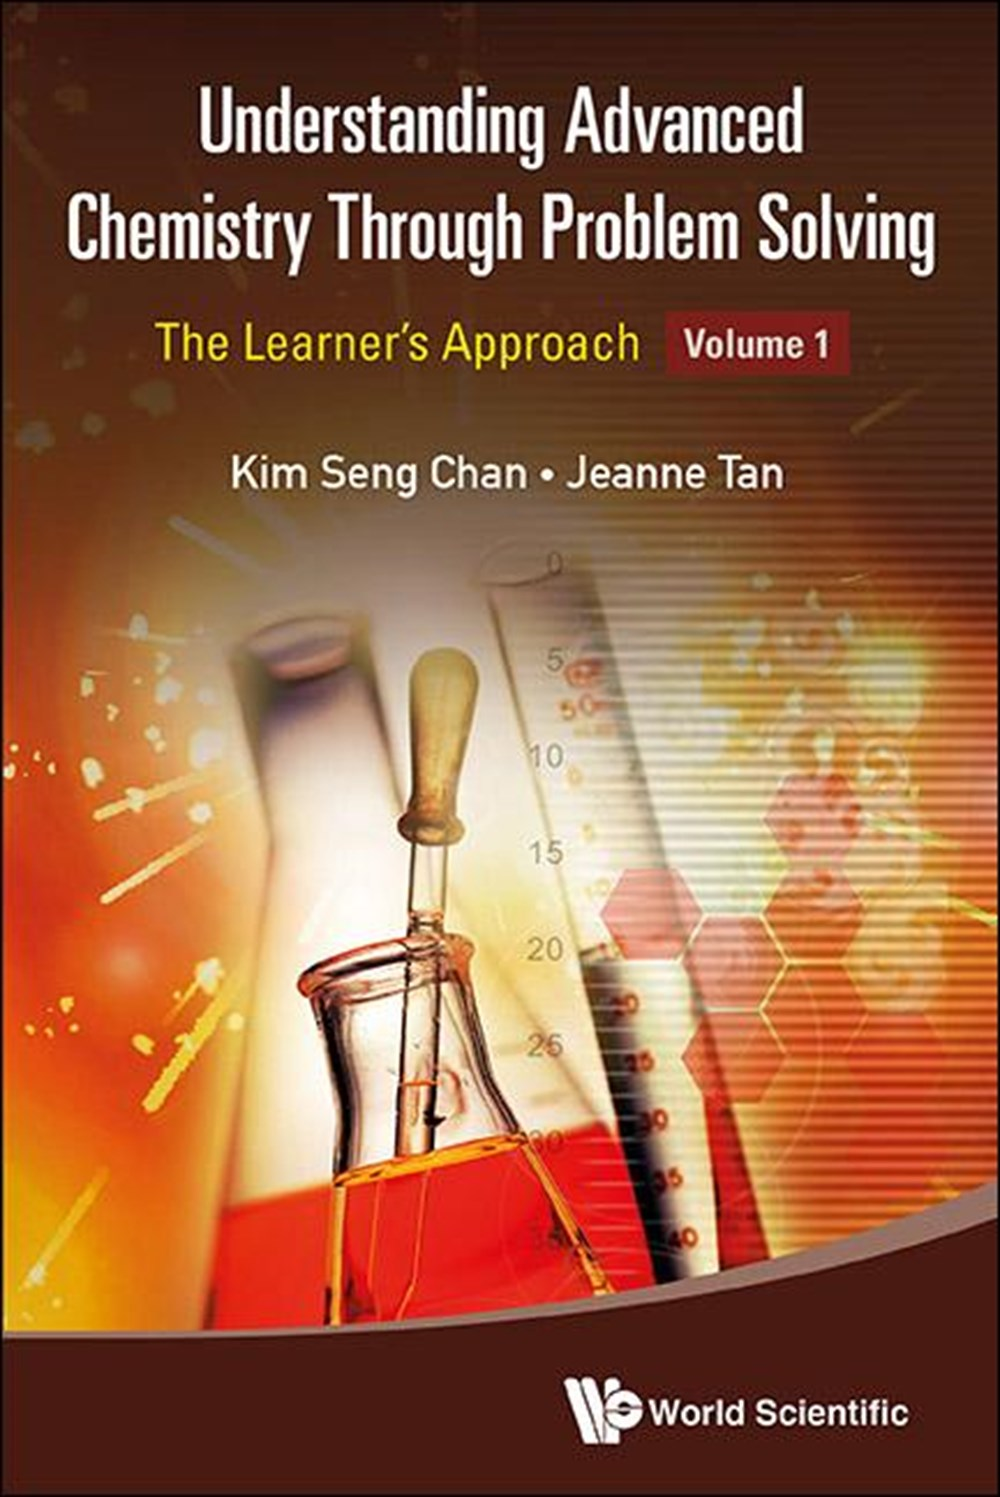 Understanding Advanced Chemistry Through Problem Solving The Learner's Approach - Volume 1